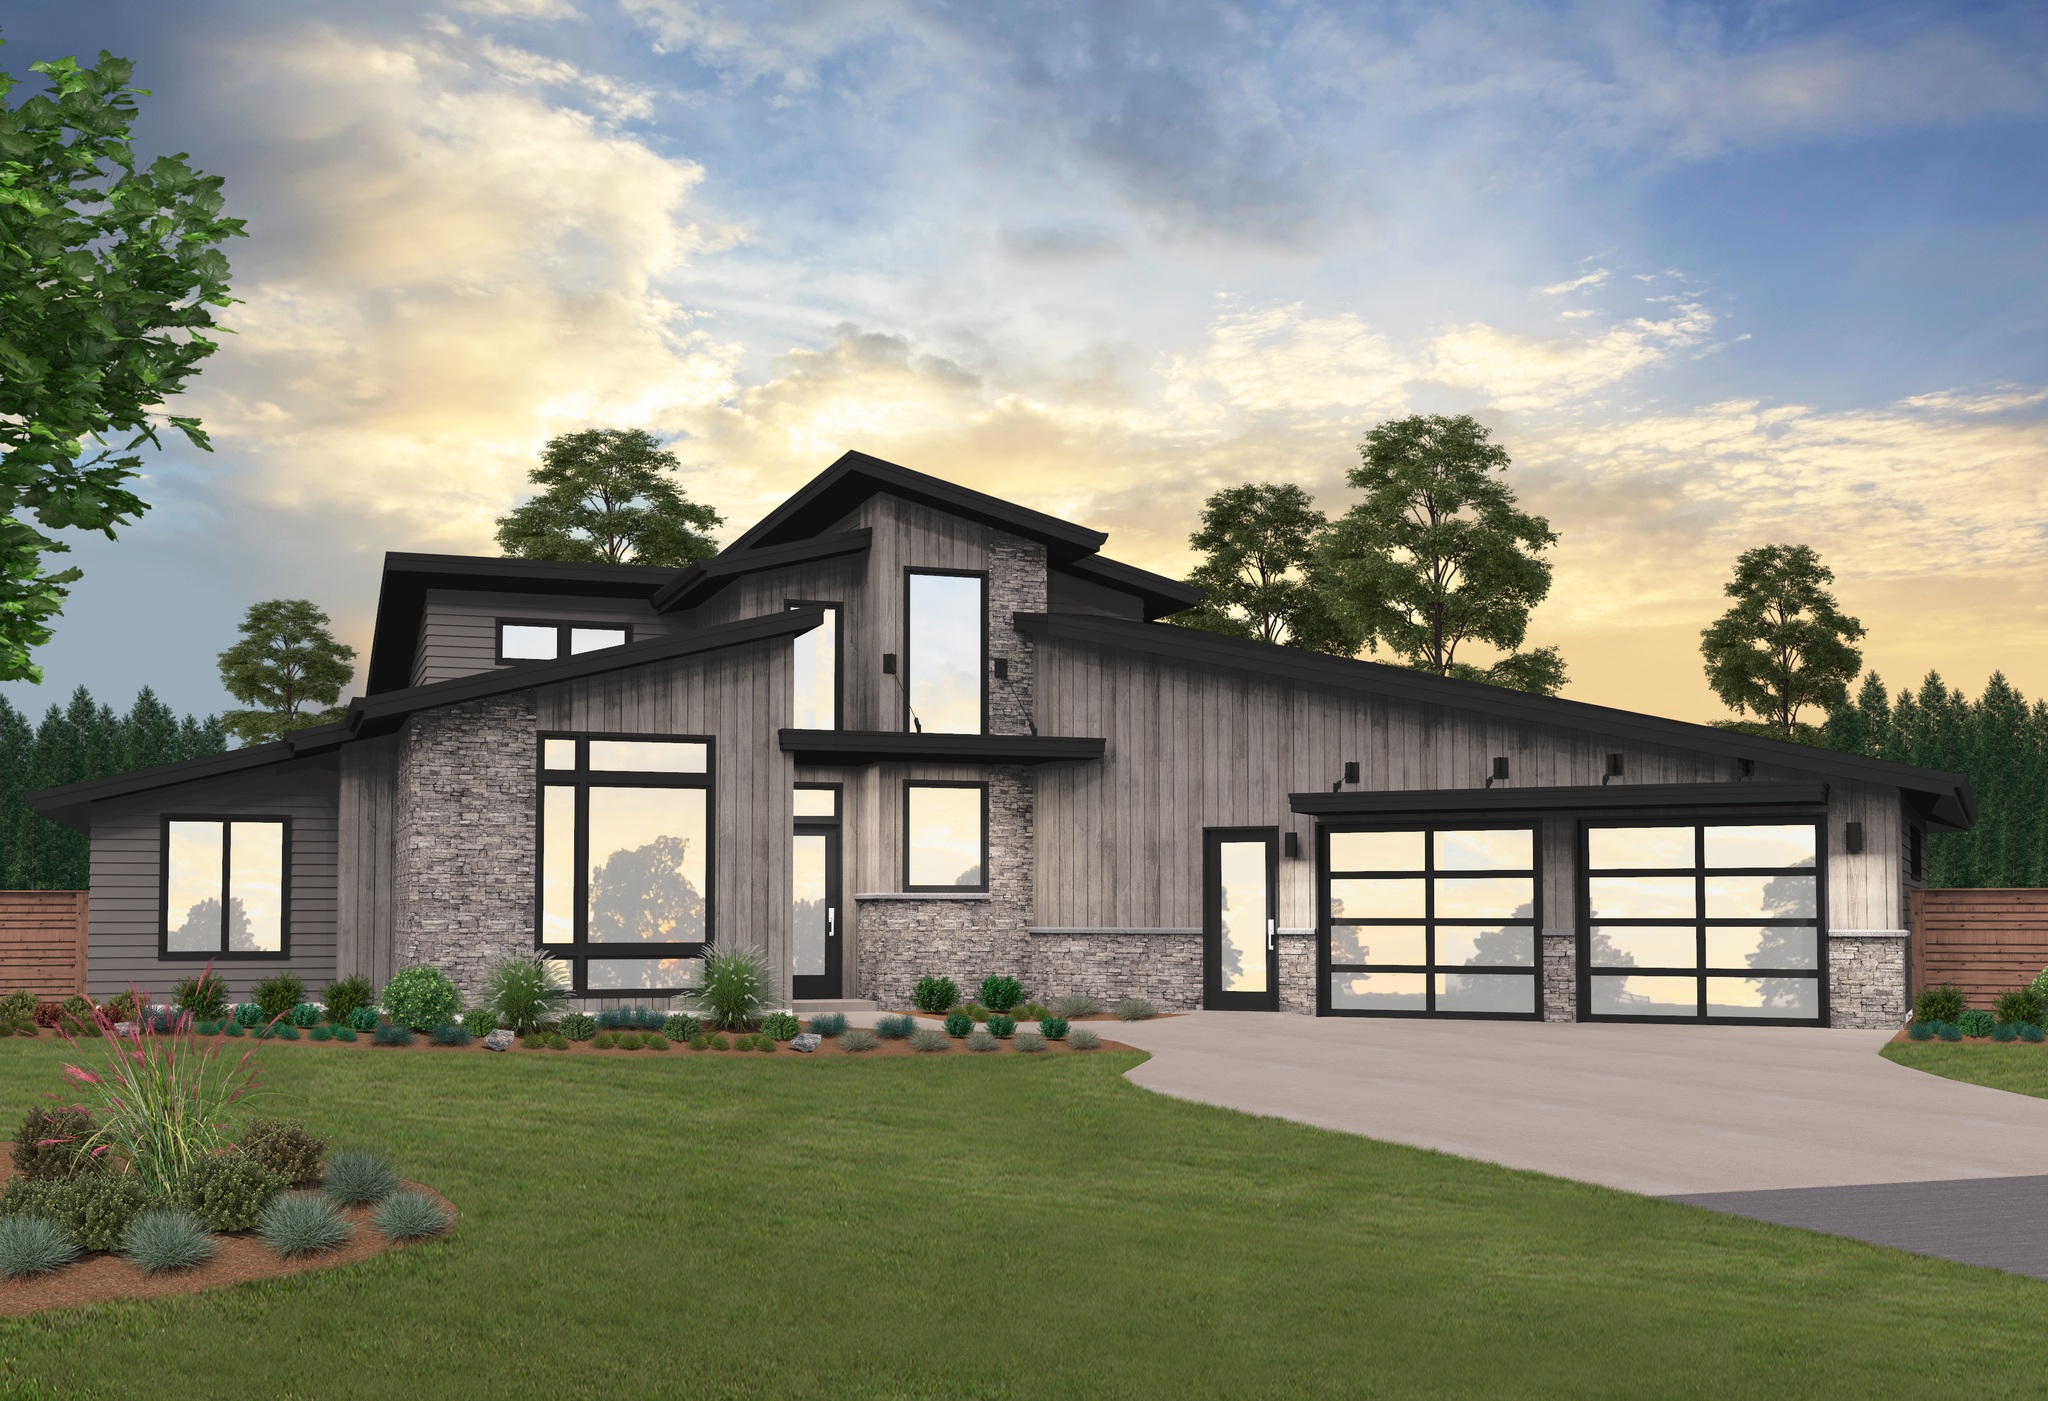 modern 2 story house plans soure point house plan modern two story home design w 2 car garage 7173